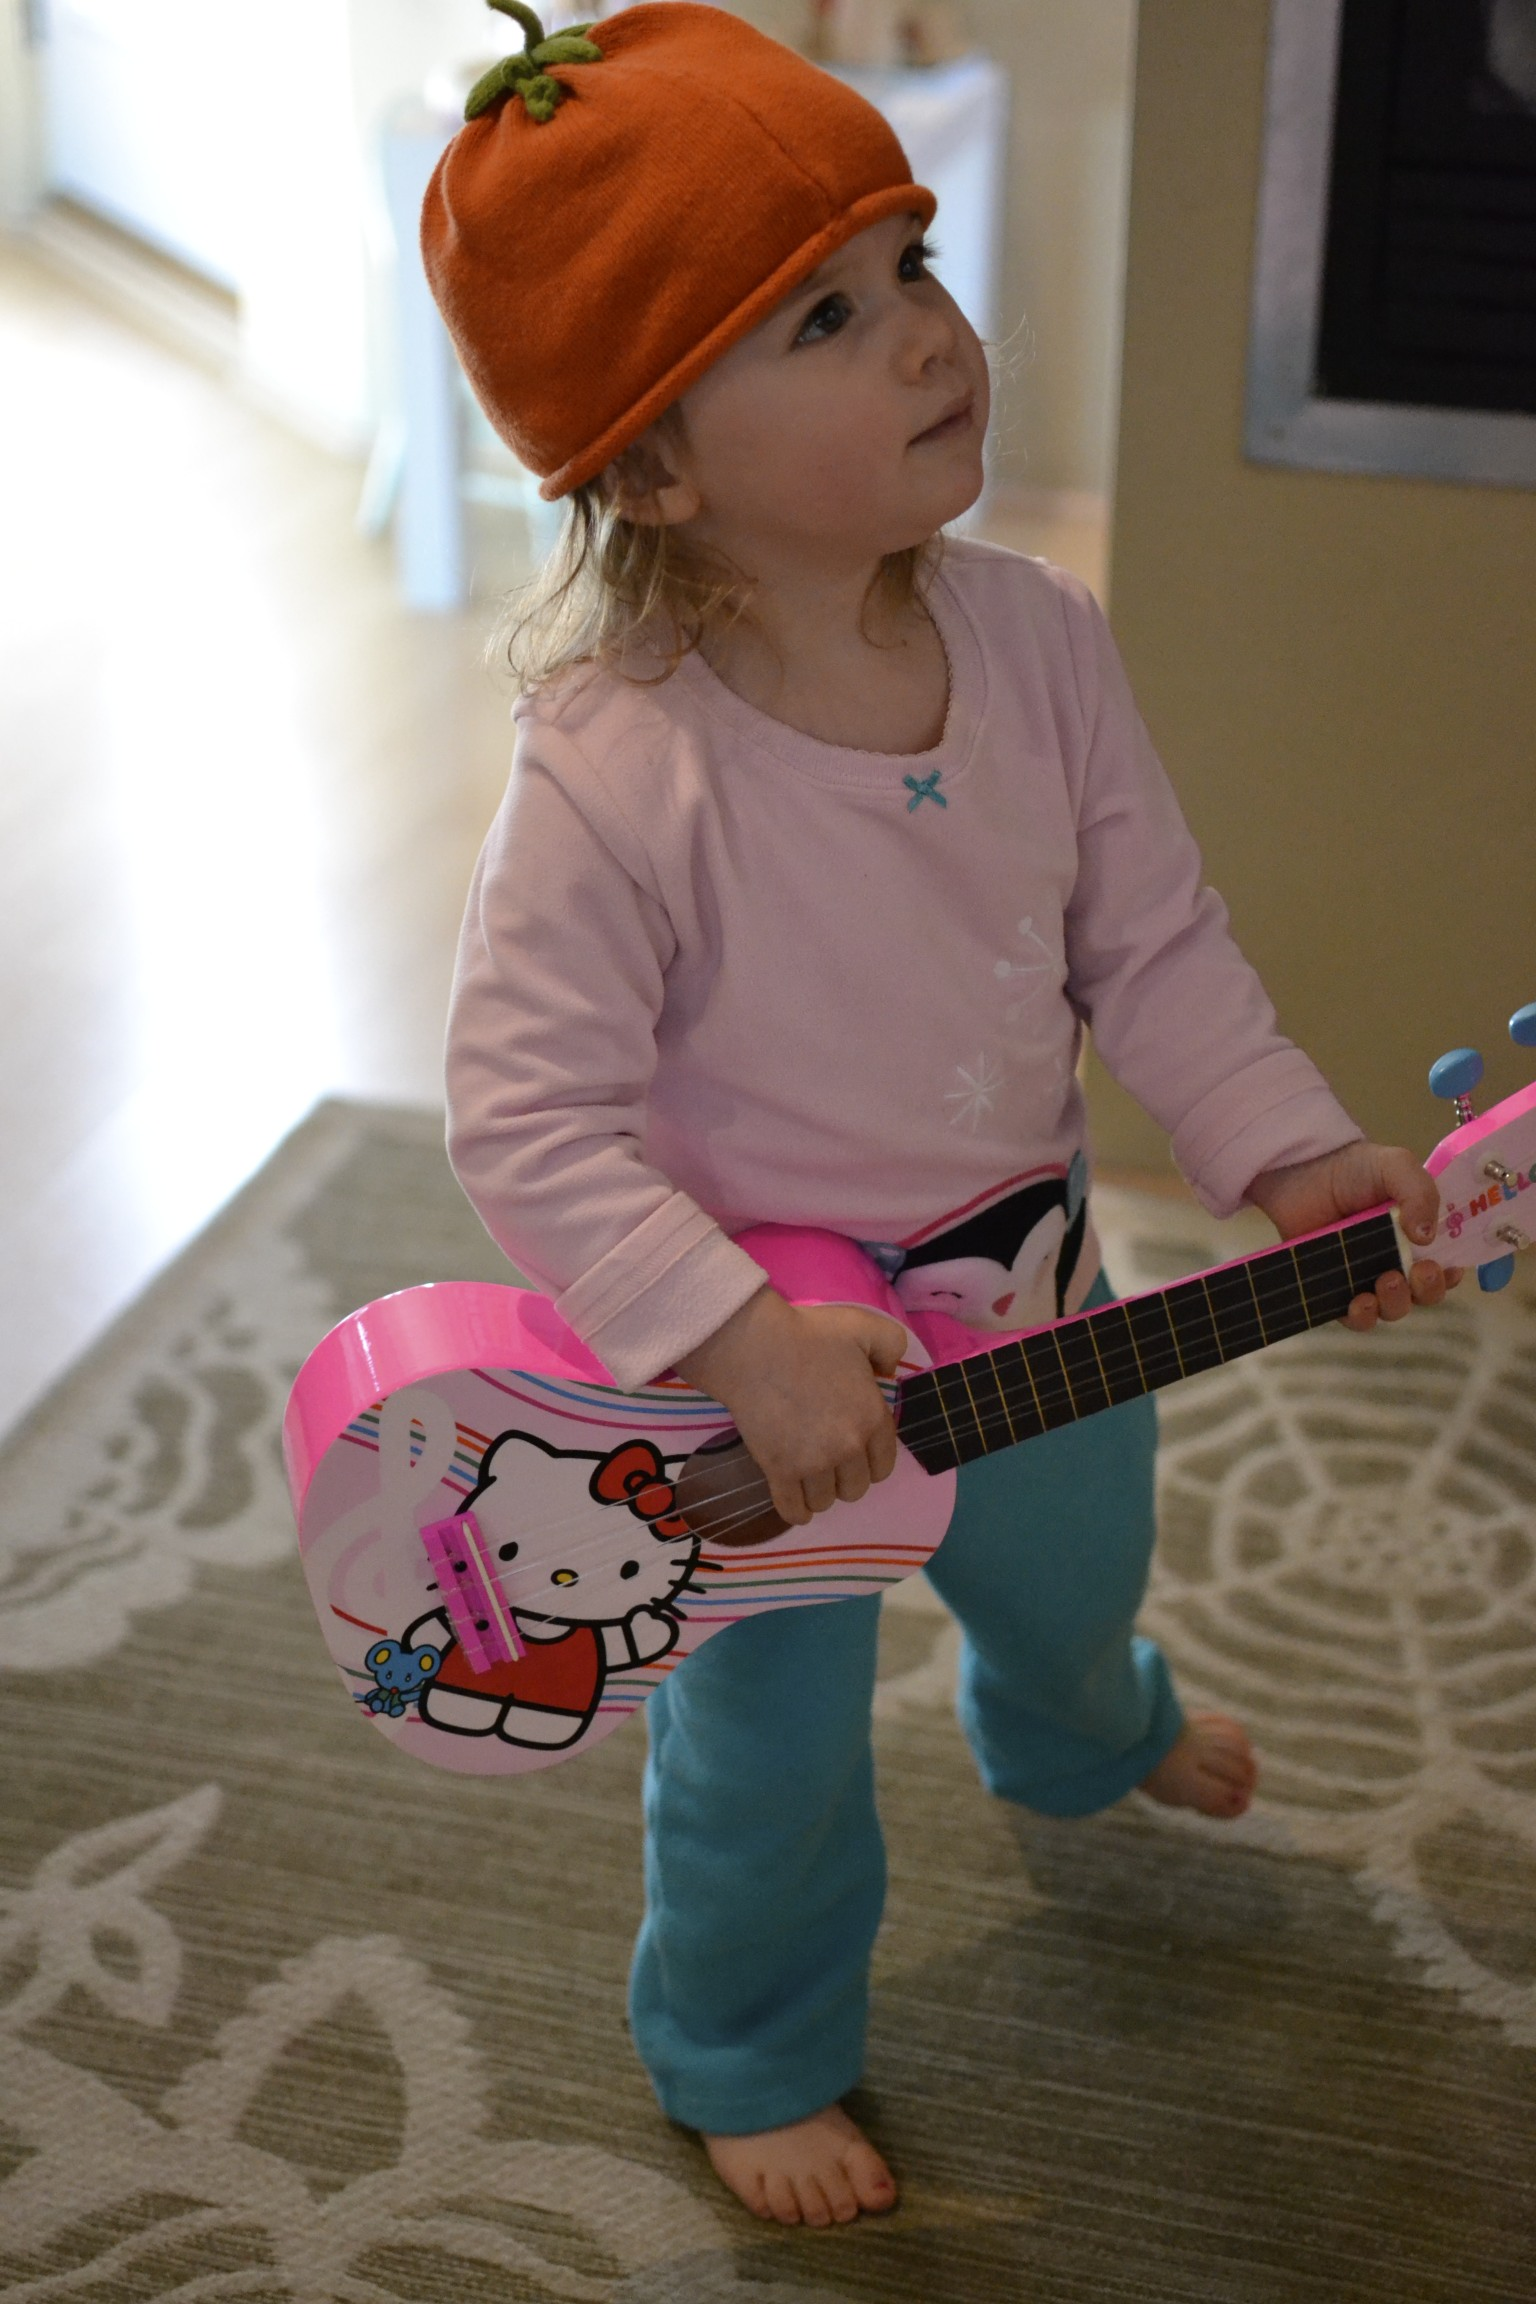 back to practicing...our little one man band should be ready for tour very soon!